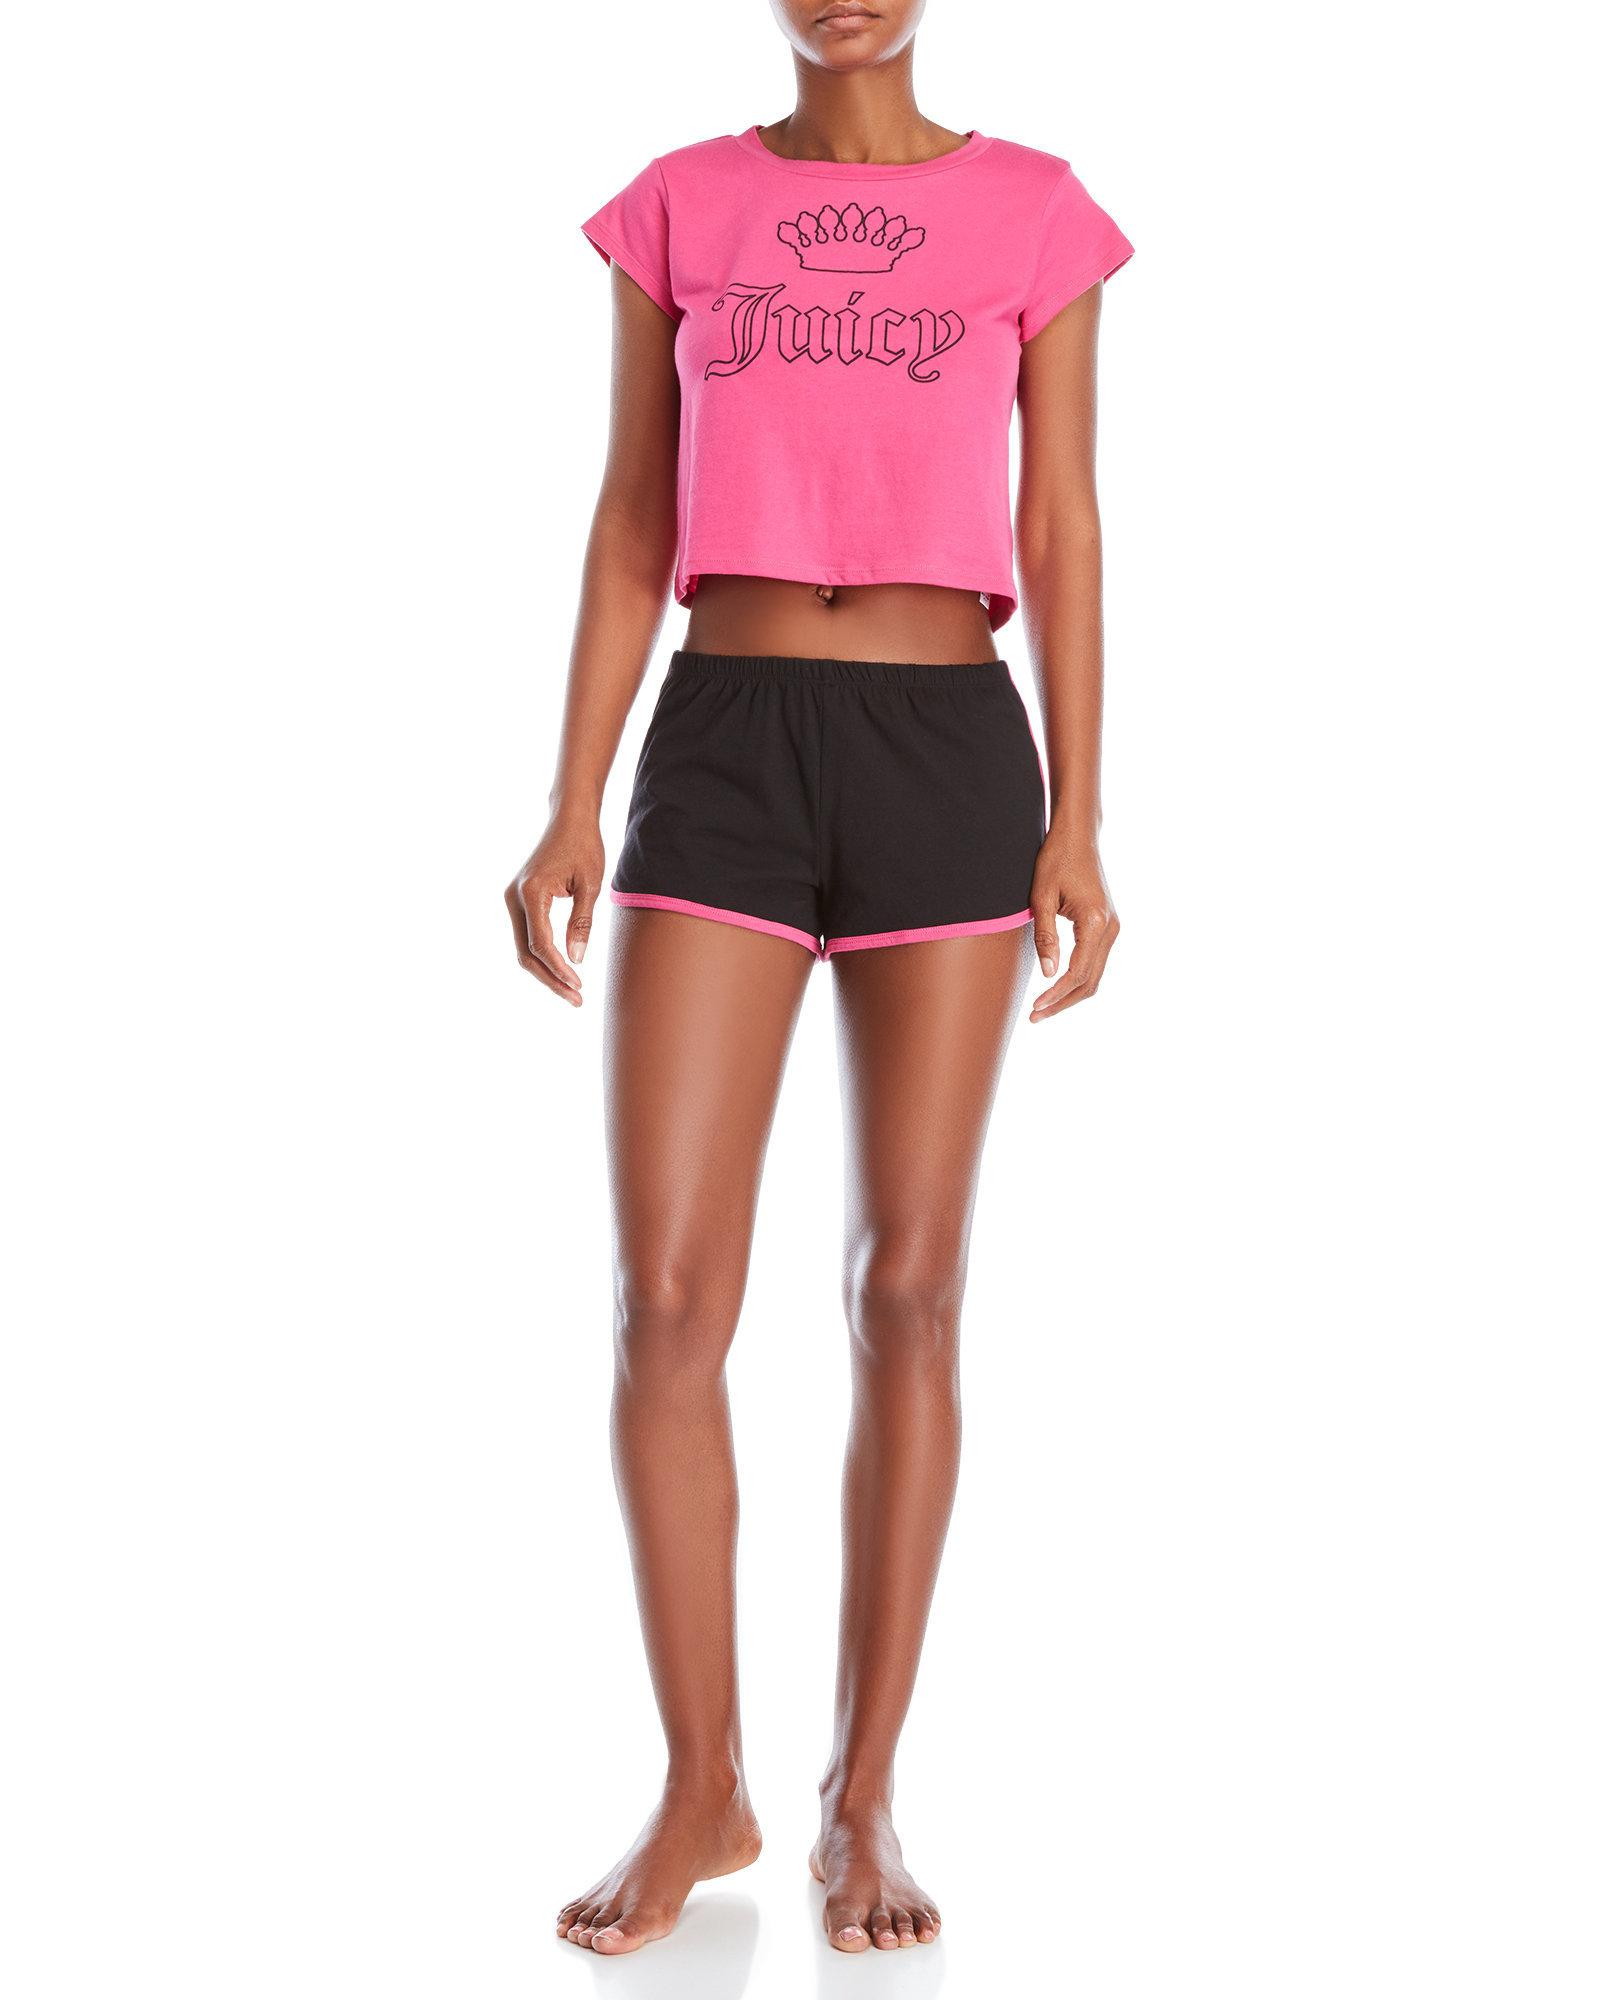 210be34178 Juicy Couture. Women s Two-piece Pajama Crown Tee   Shorts Set